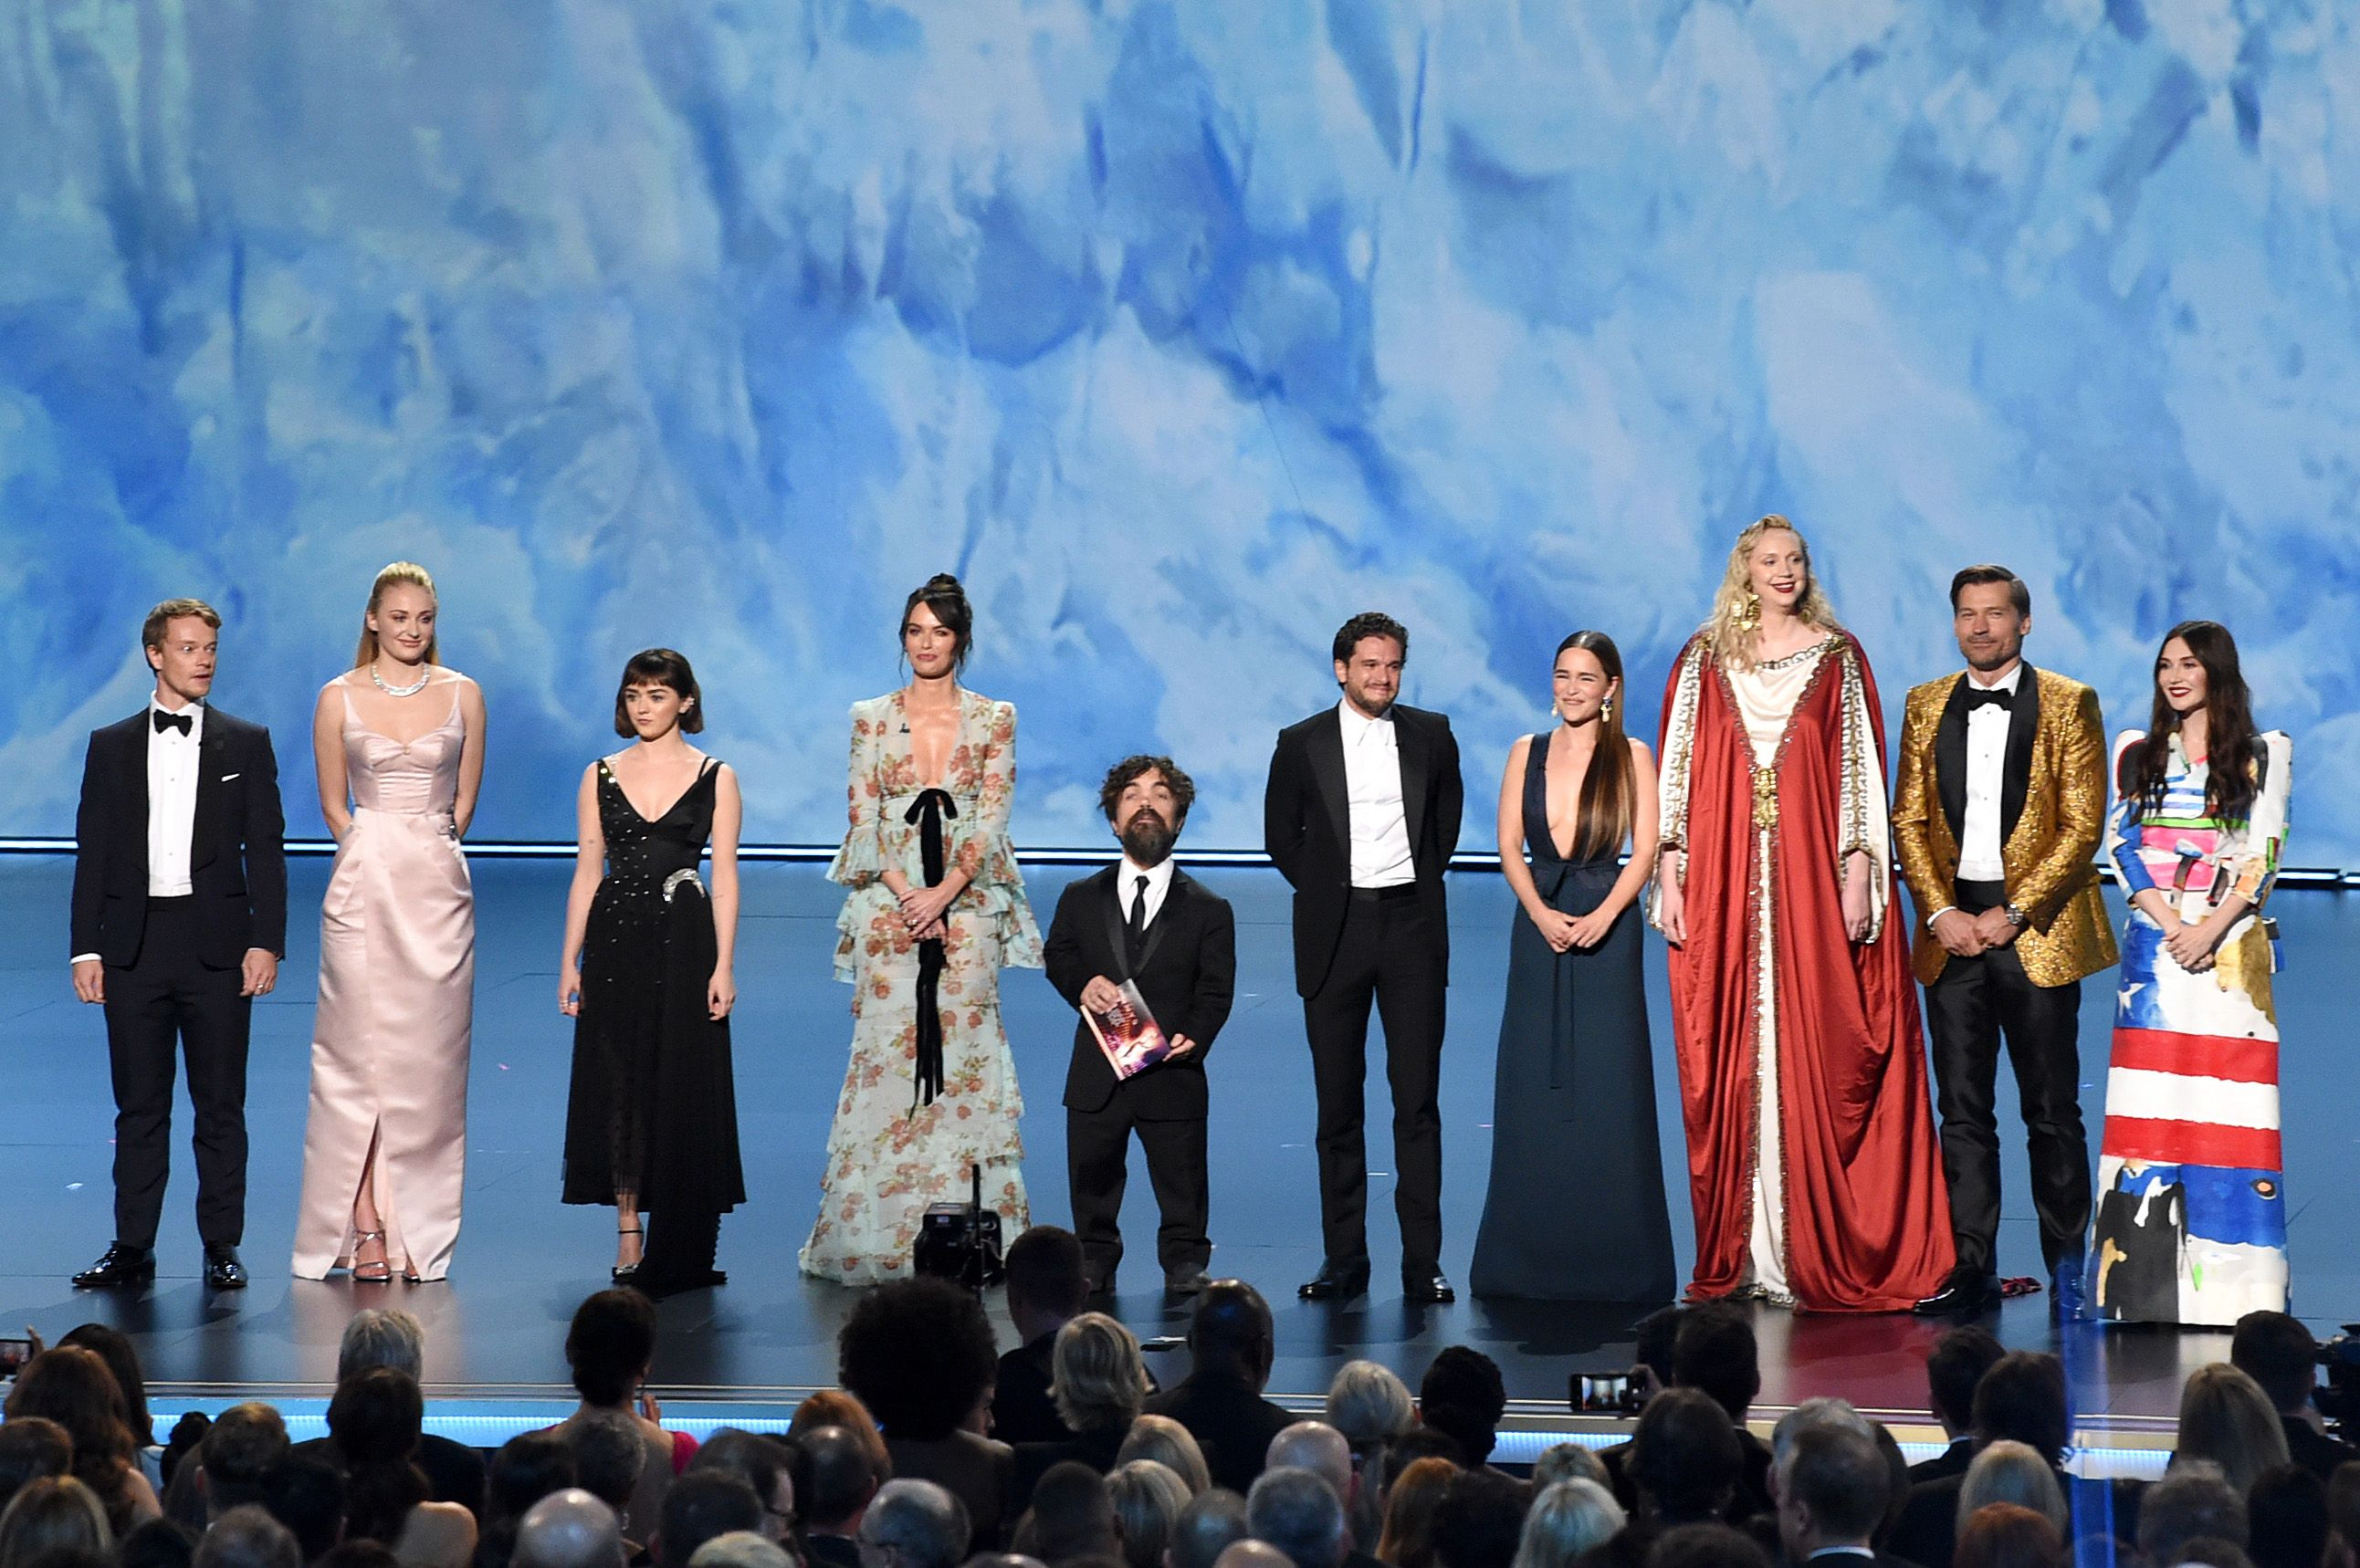 Twitter Is Destroying Bran Stark for Not Being Invited on Stage at the Emmys with the 'Game of Thrones' Cast